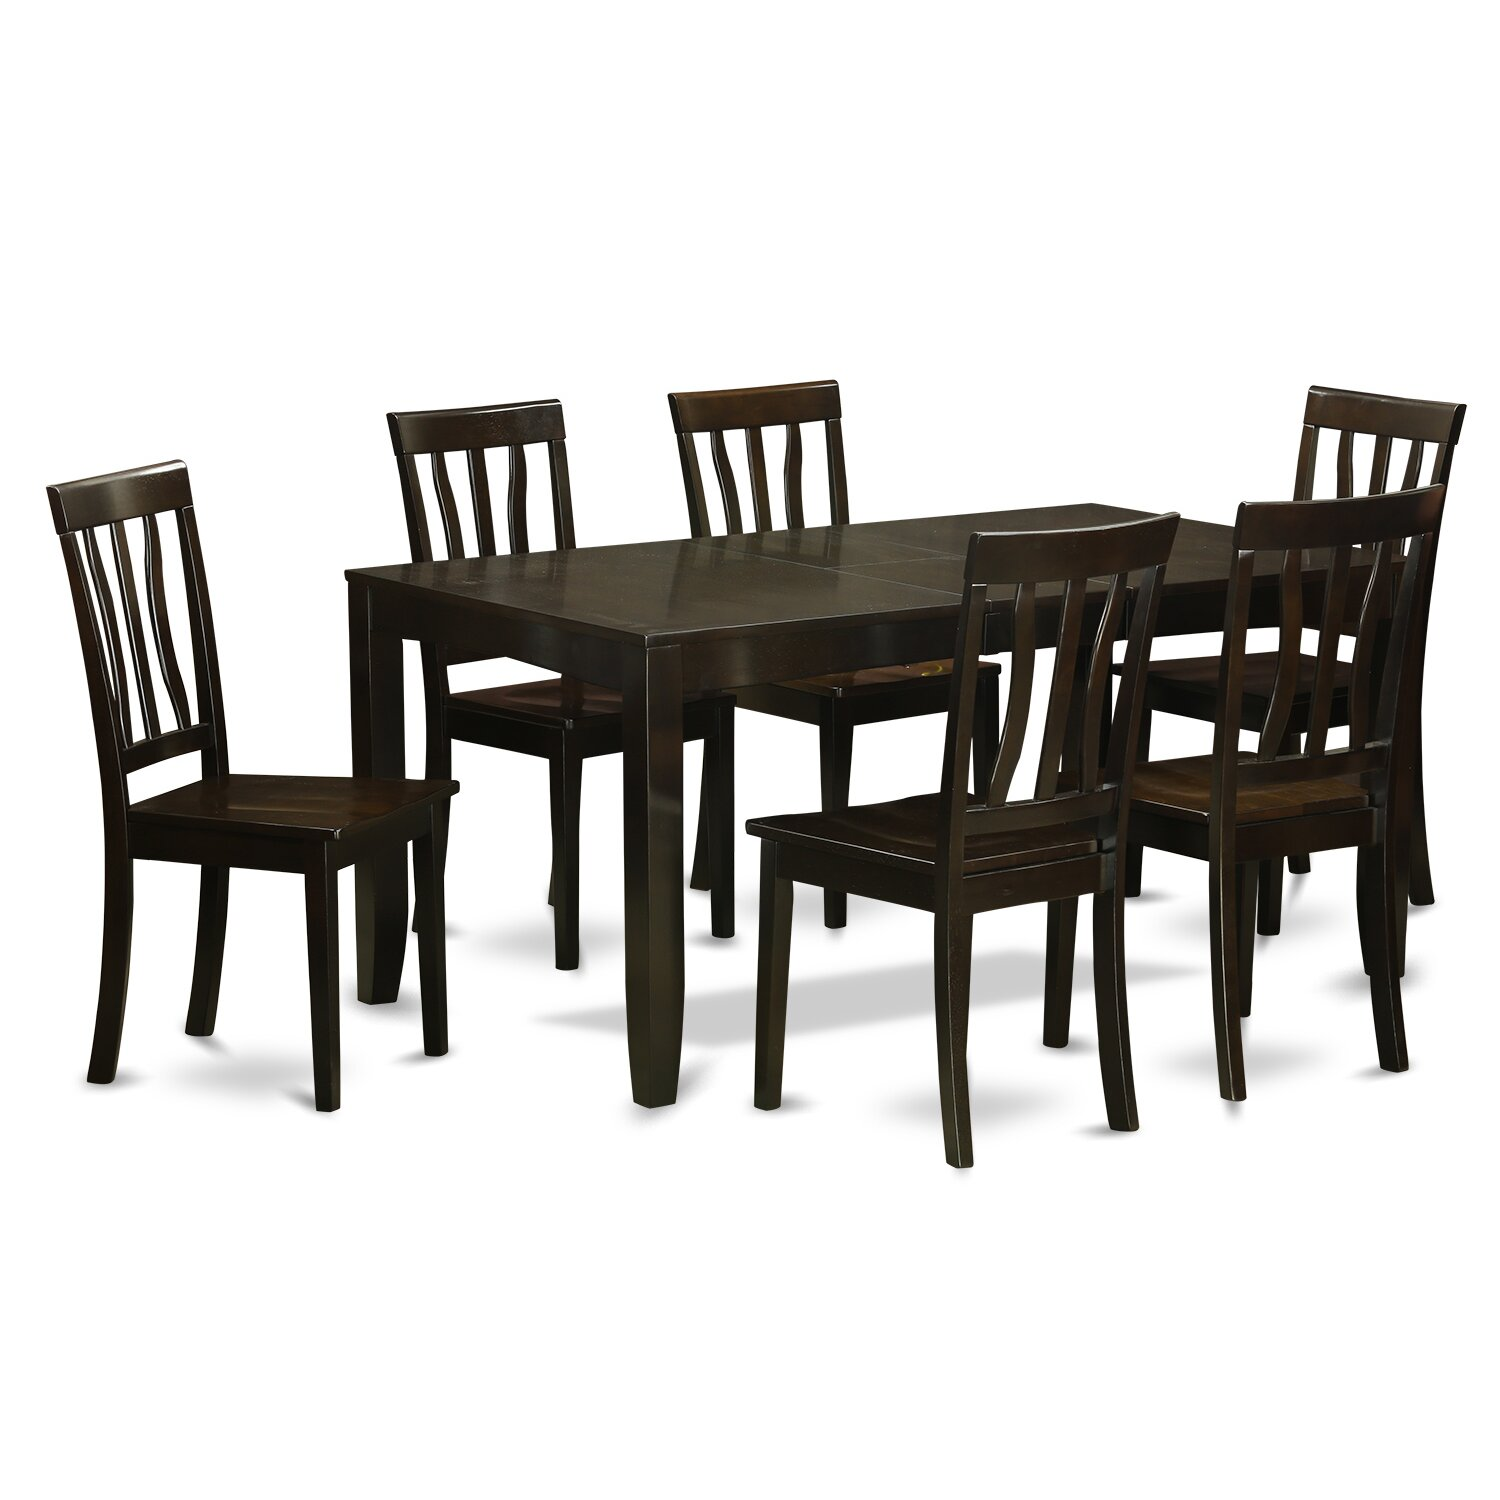 Piece Dining Table Set For 6 Dining Table With Leaf And 6 Kitchen